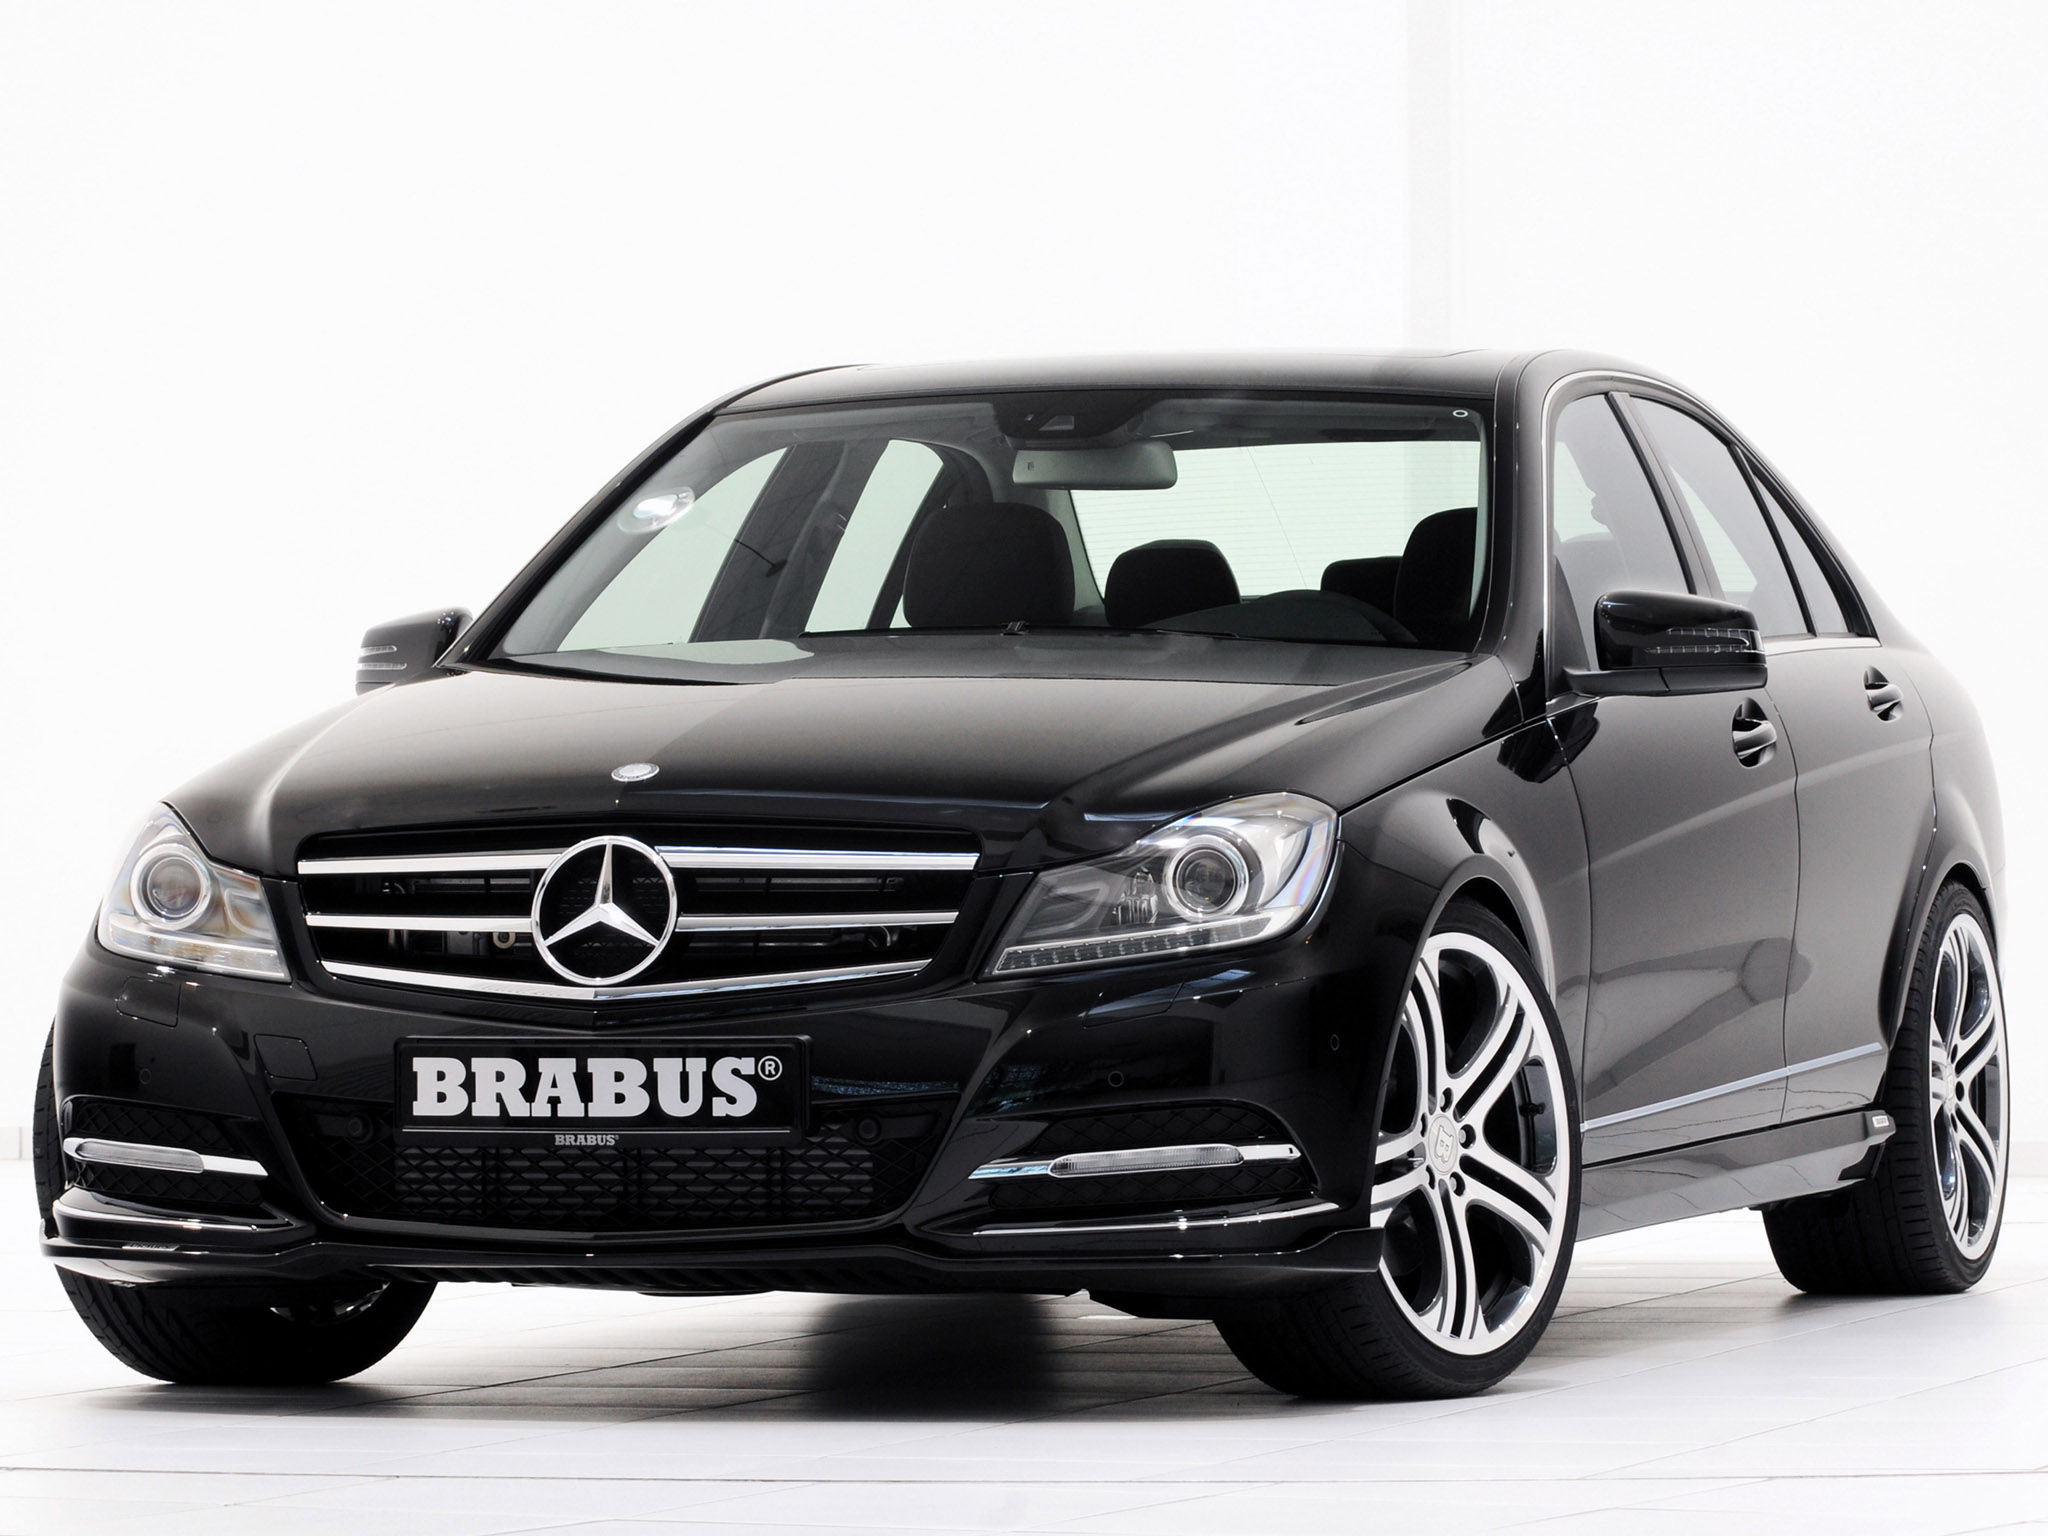 brabus mercedes c klasse w204 2011 brabus mercedes c klasse w204 2011 photo 04 car in pictures. Black Bedroom Furniture Sets. Home Design Ideas